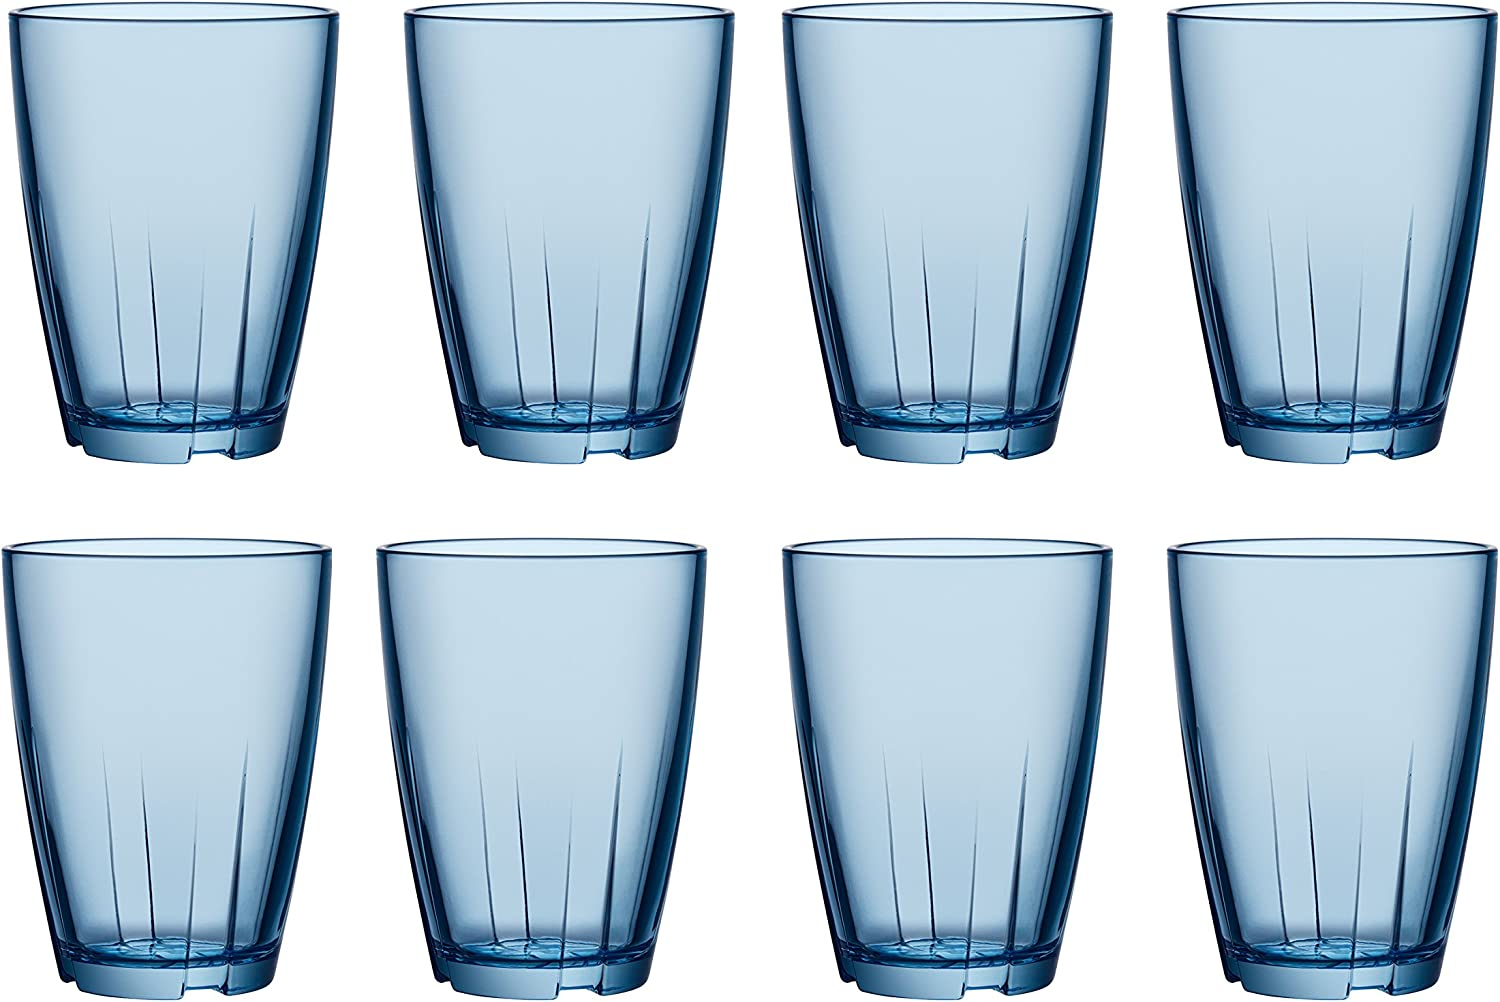 Kosta Boda 7015542 Tumbler Glass, bluee